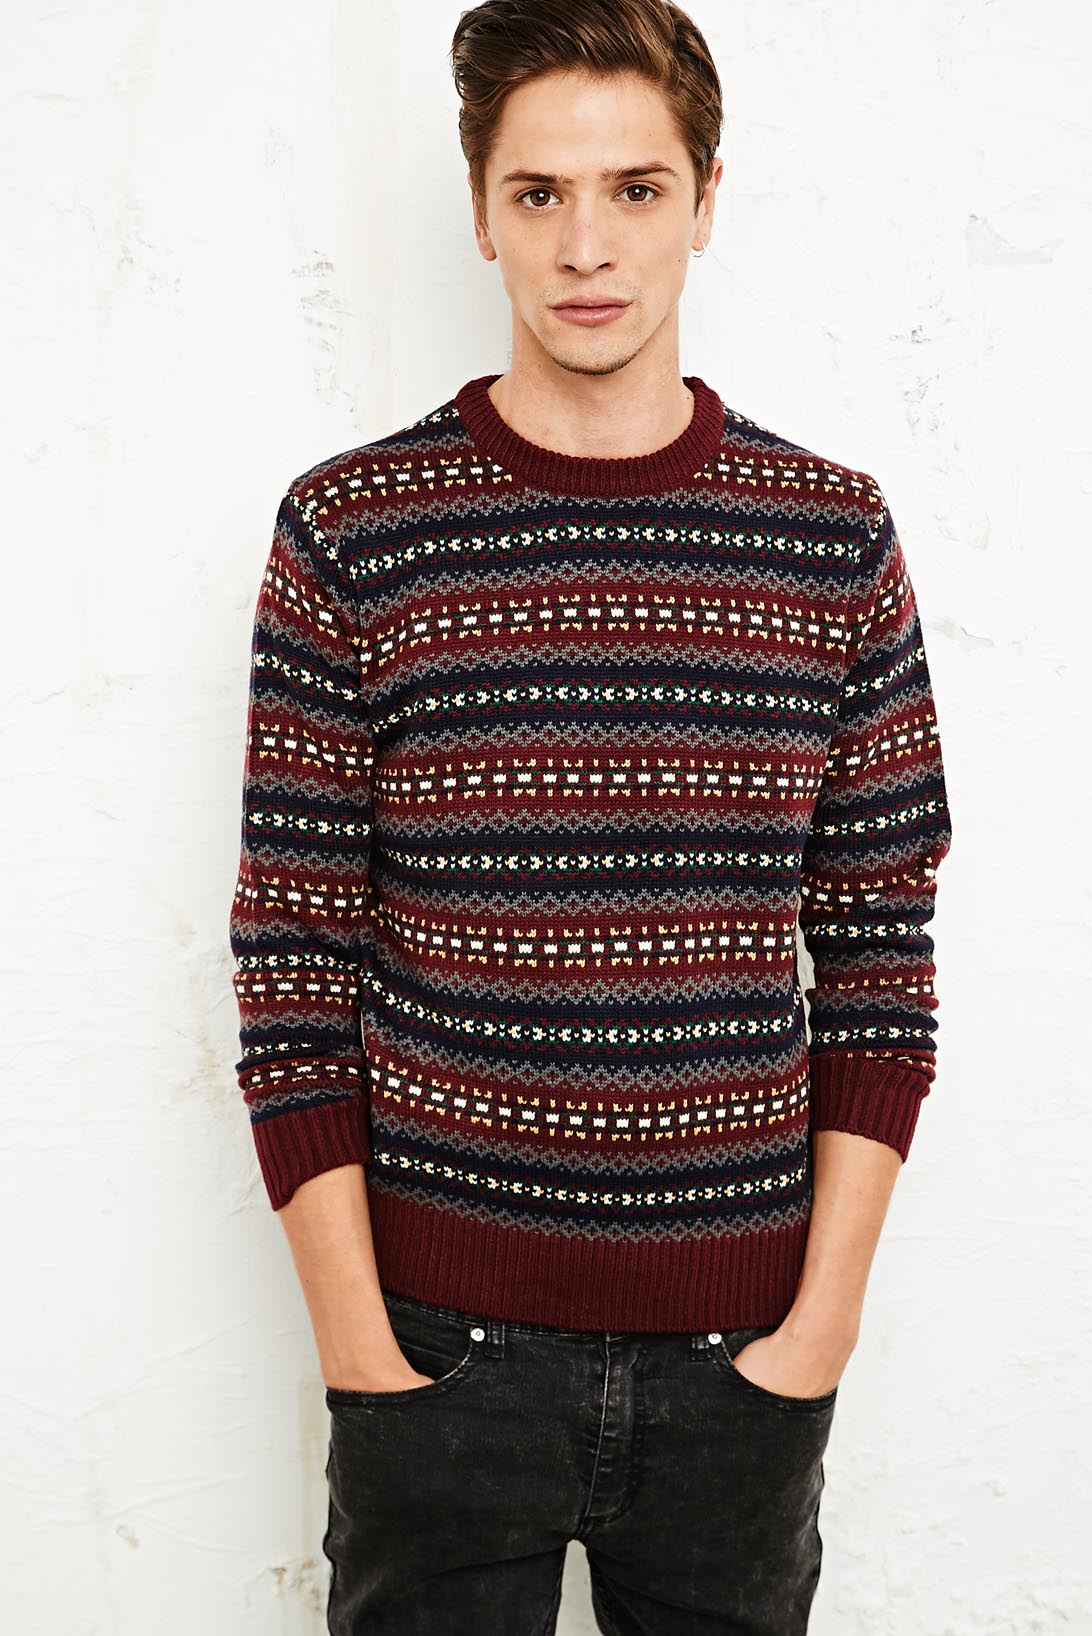 10 Stylish Fashionable Christmas Jumpers & Sweaters For Men | The ...